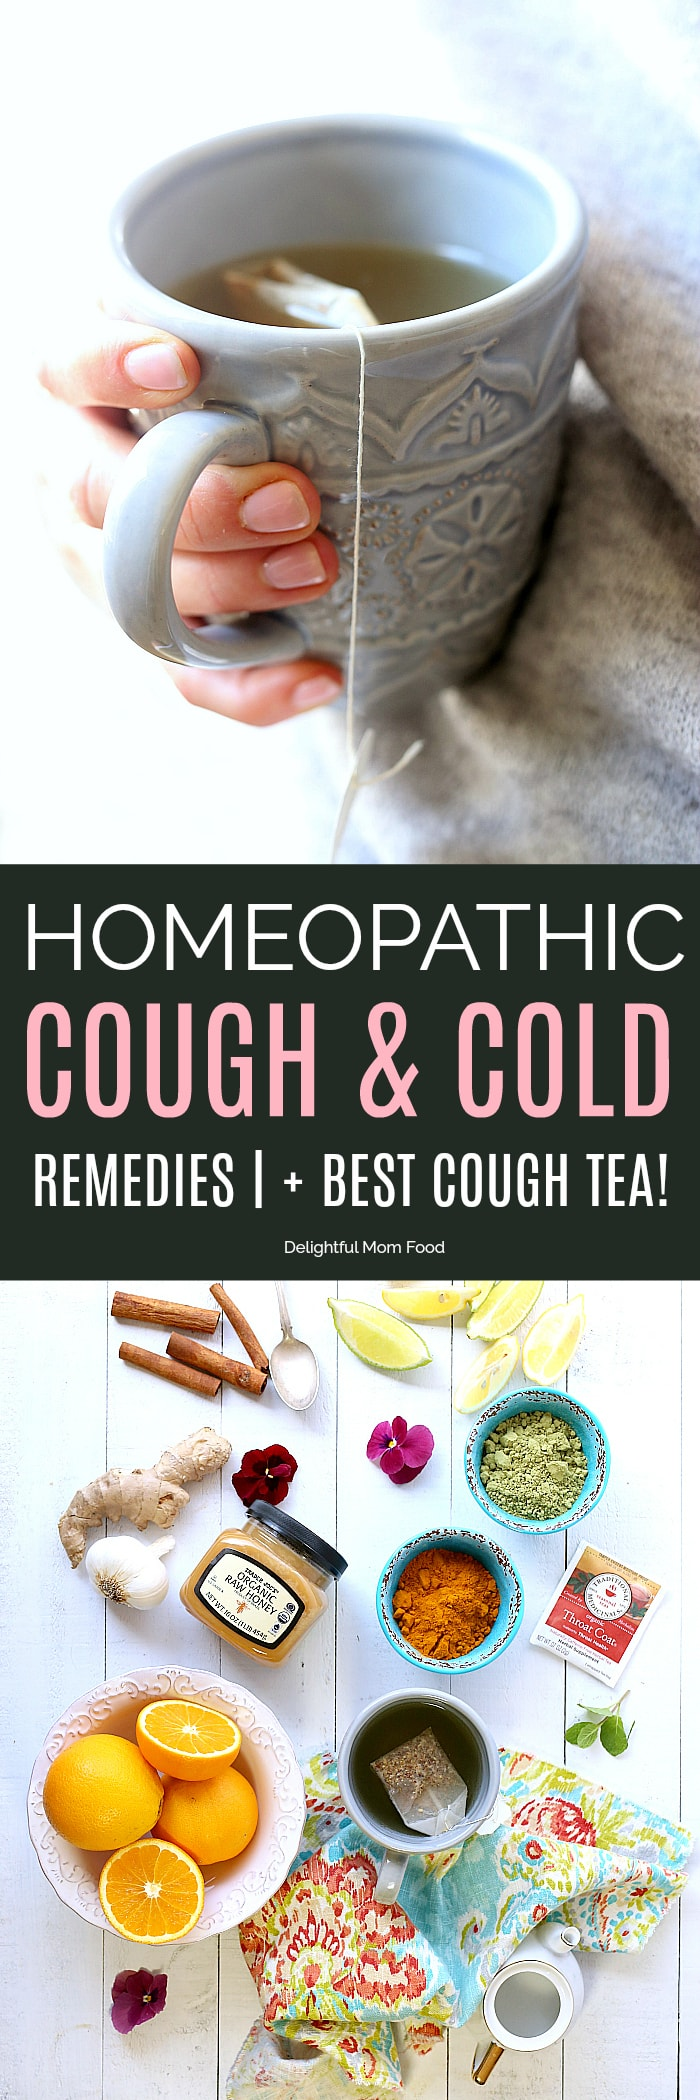 Best Natural Remedies For Cough And Cold